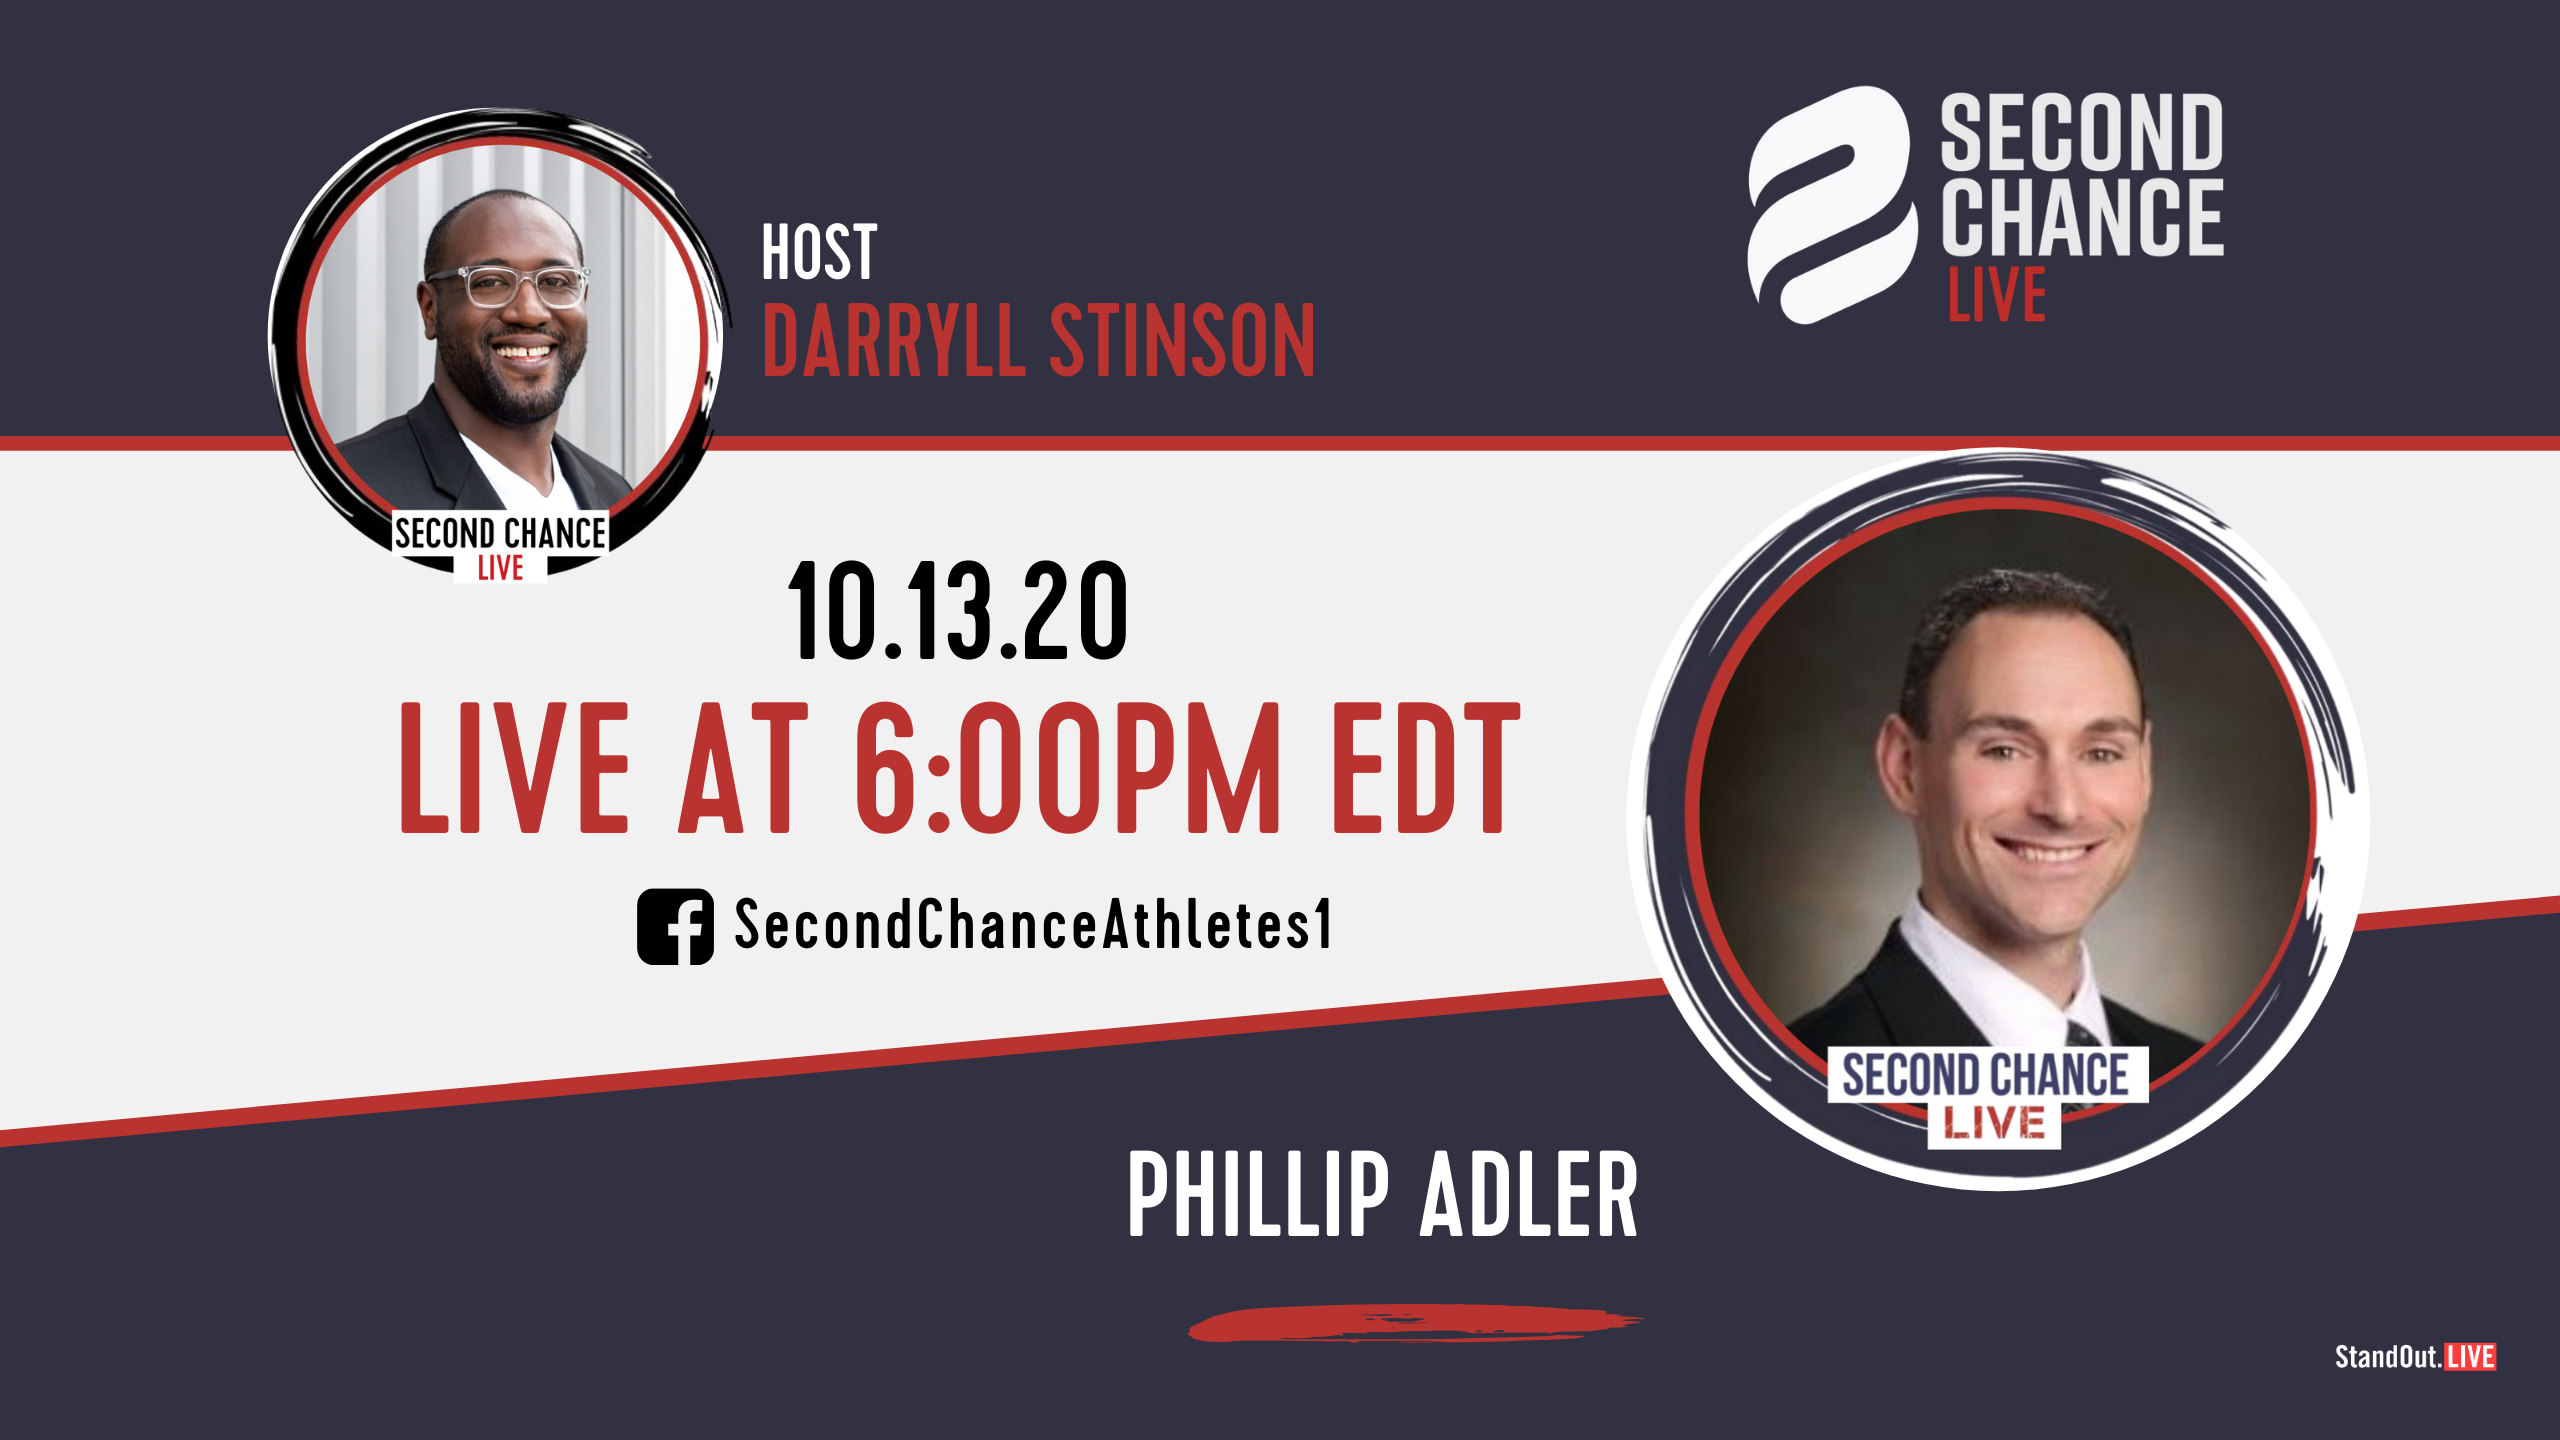 Second Chance LIVE -with Dr.Phillip Adler